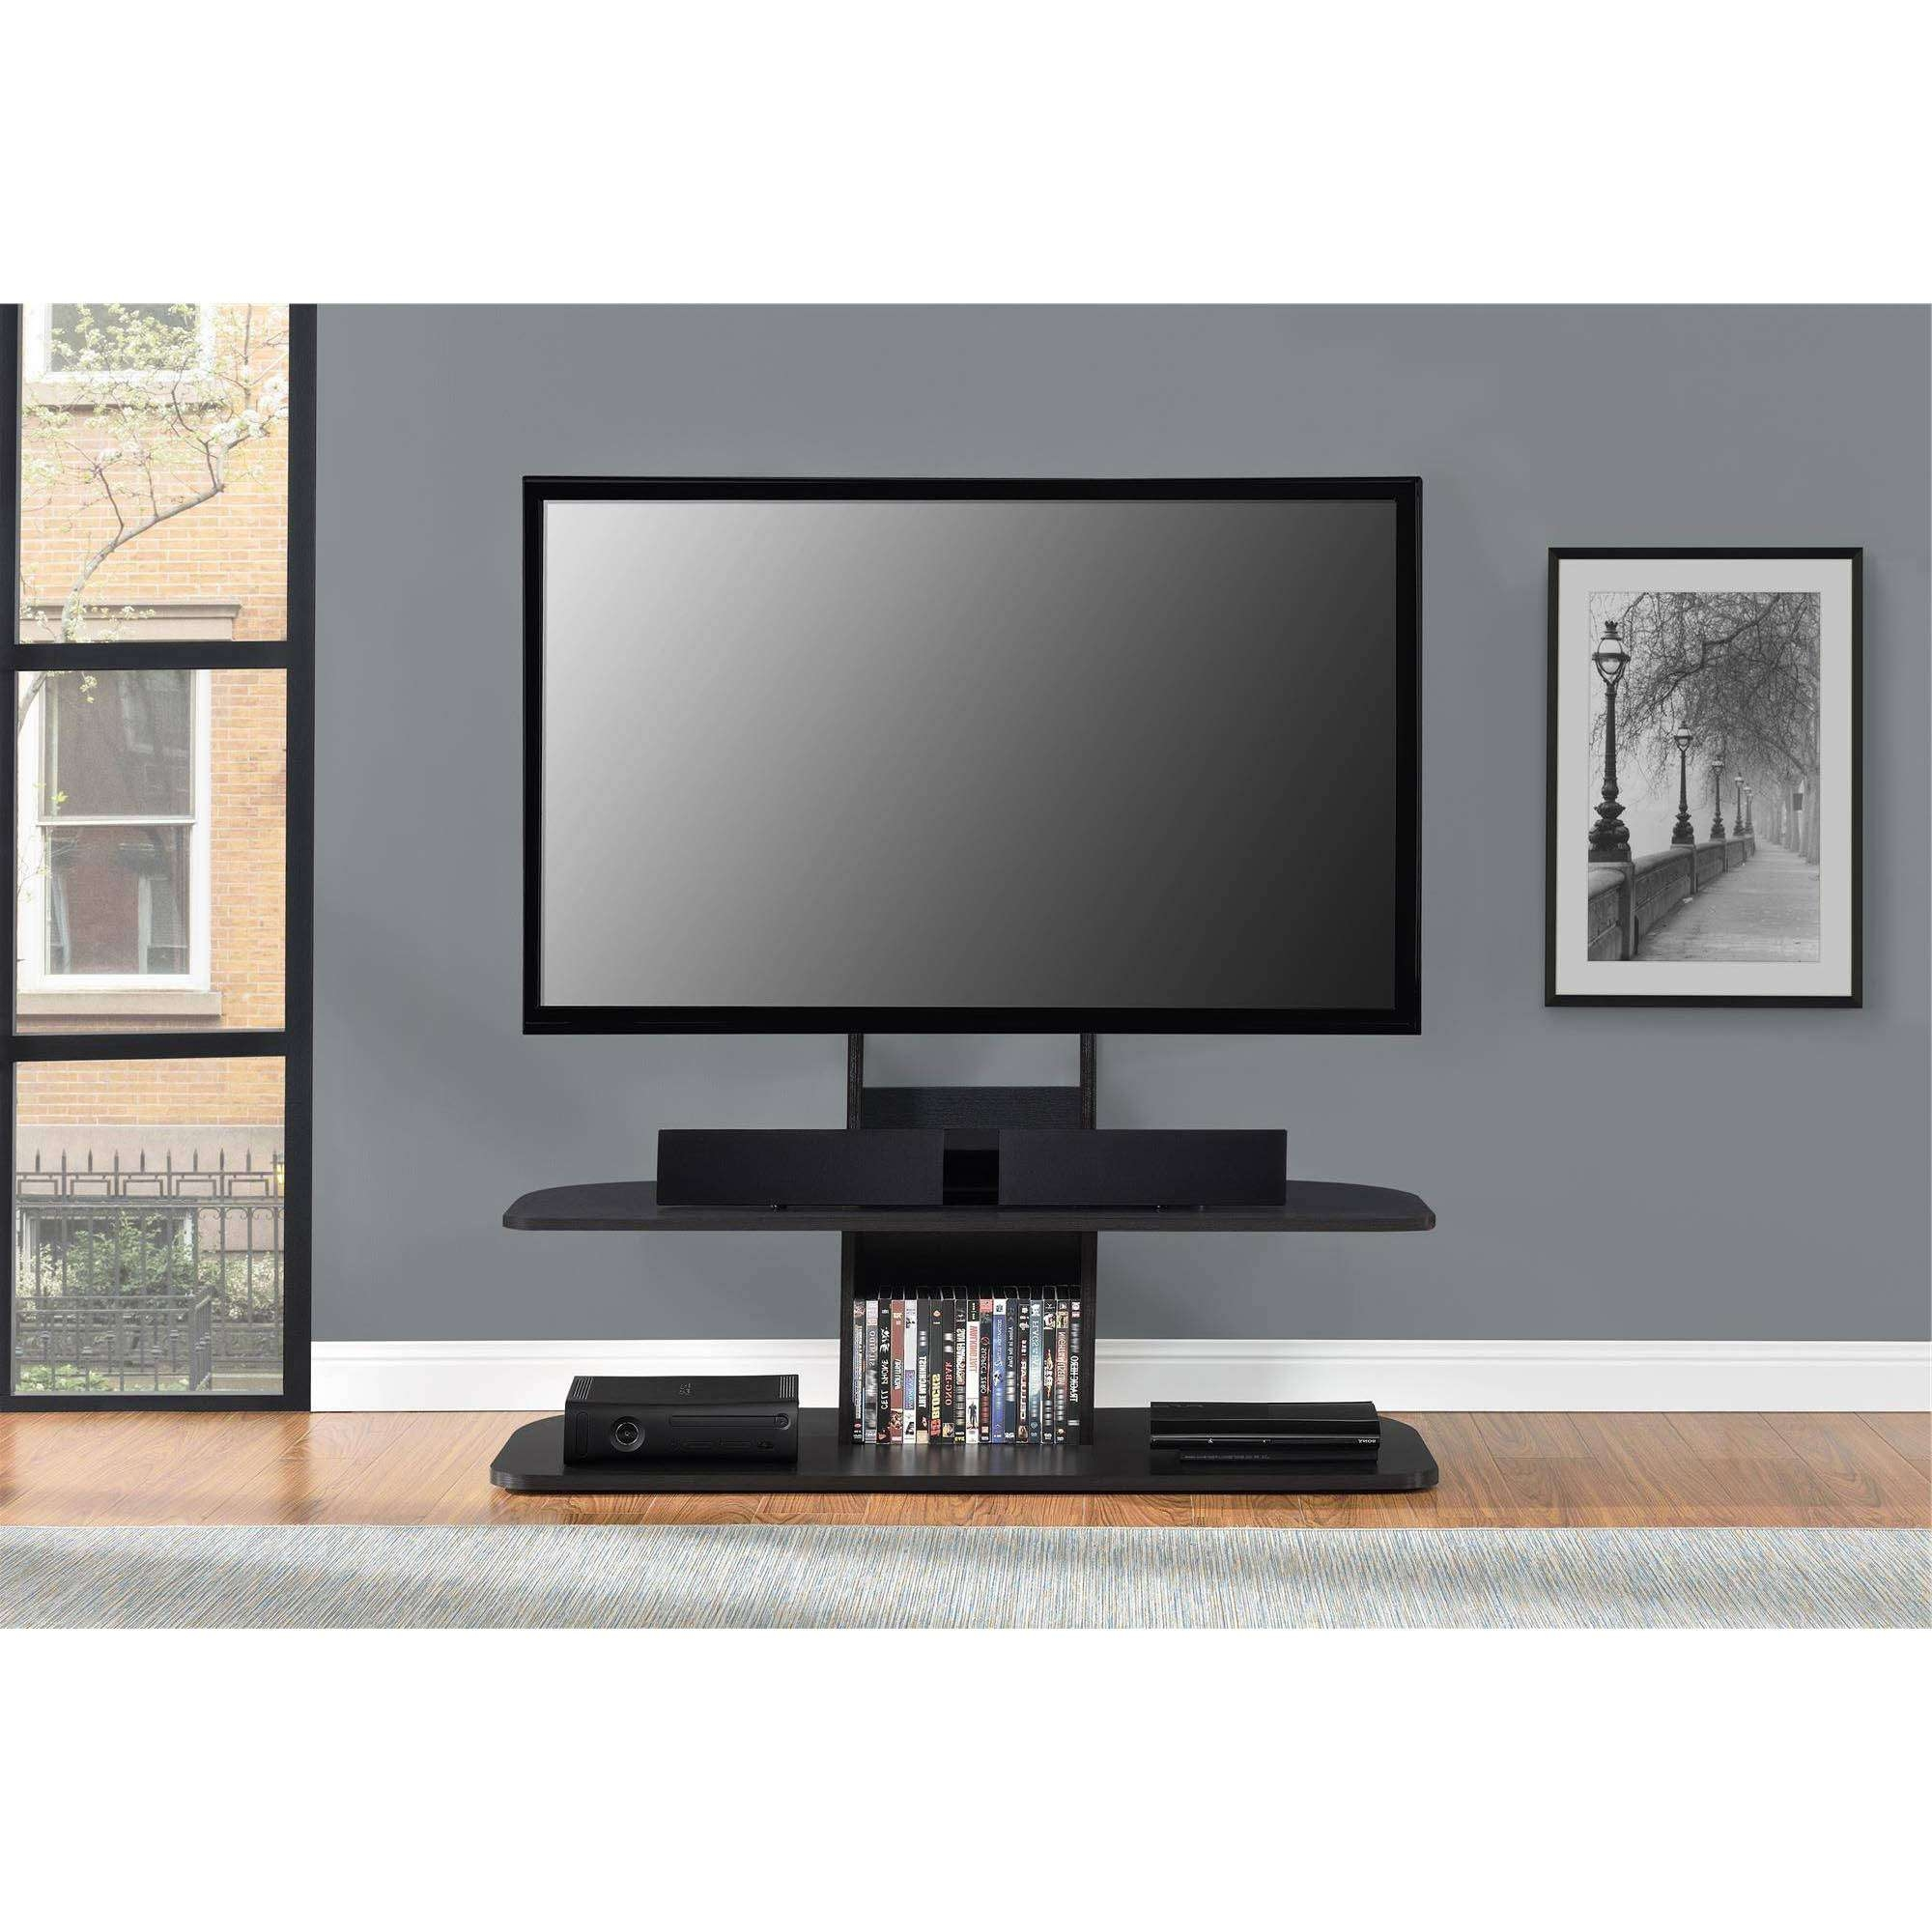 Tv Stand : Stirring Corner Tvand Mount Photo Design With Wood Wall In Corner Tv Stands 40 Inch (View 17 of 20)